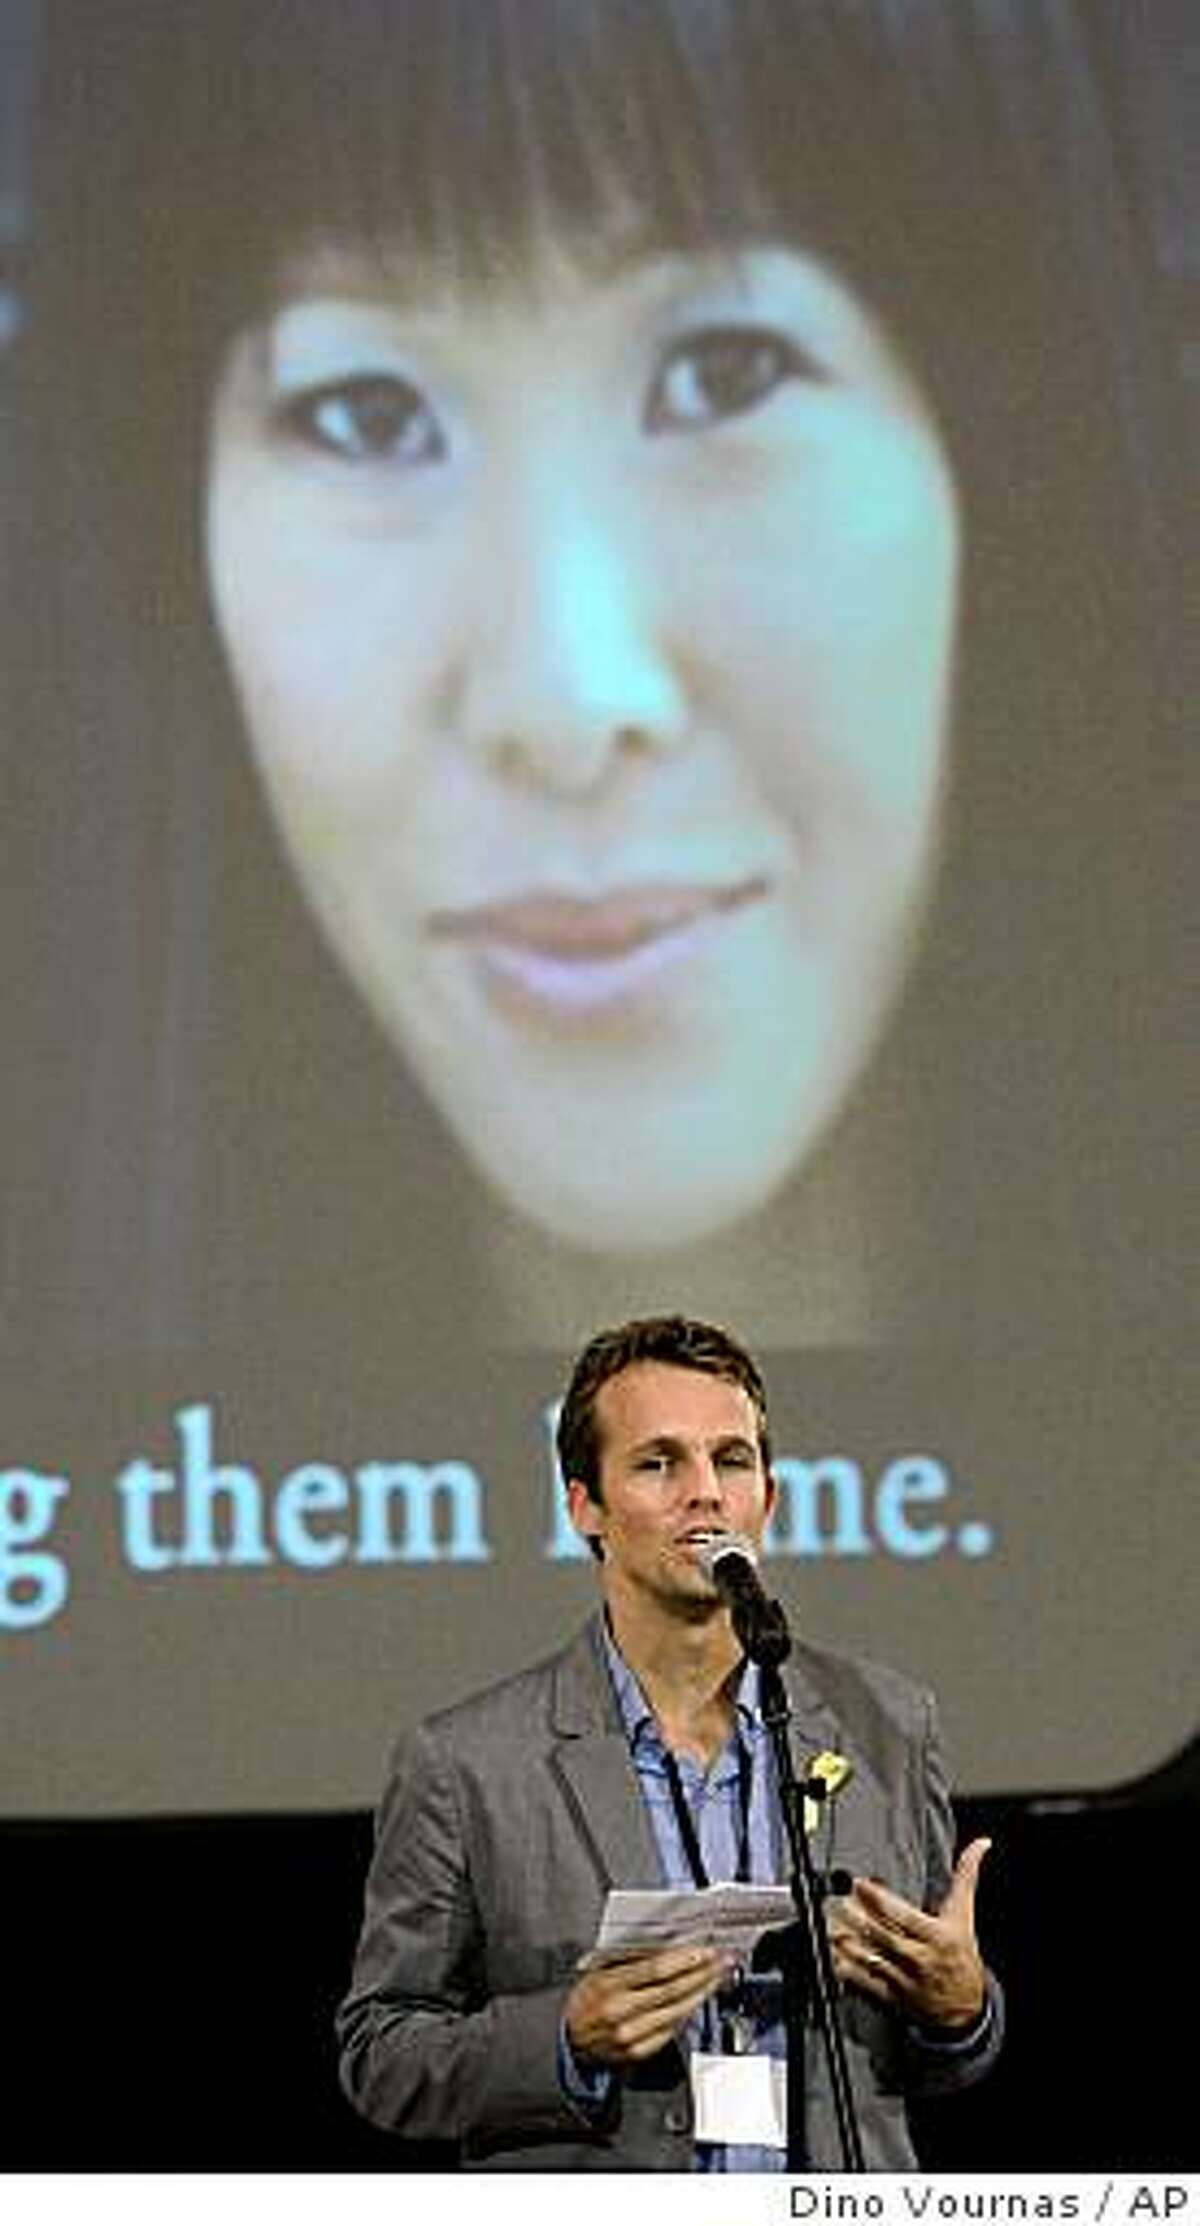 Iain Clayton, husband of Laura Ling (on screen), speaks to the crowd at the Academy of Art University during a vigil for the two journalists held by North Korea, Wednesday, June 24, 2009 in San Francisco. (AP Photo/Dino Vournas)